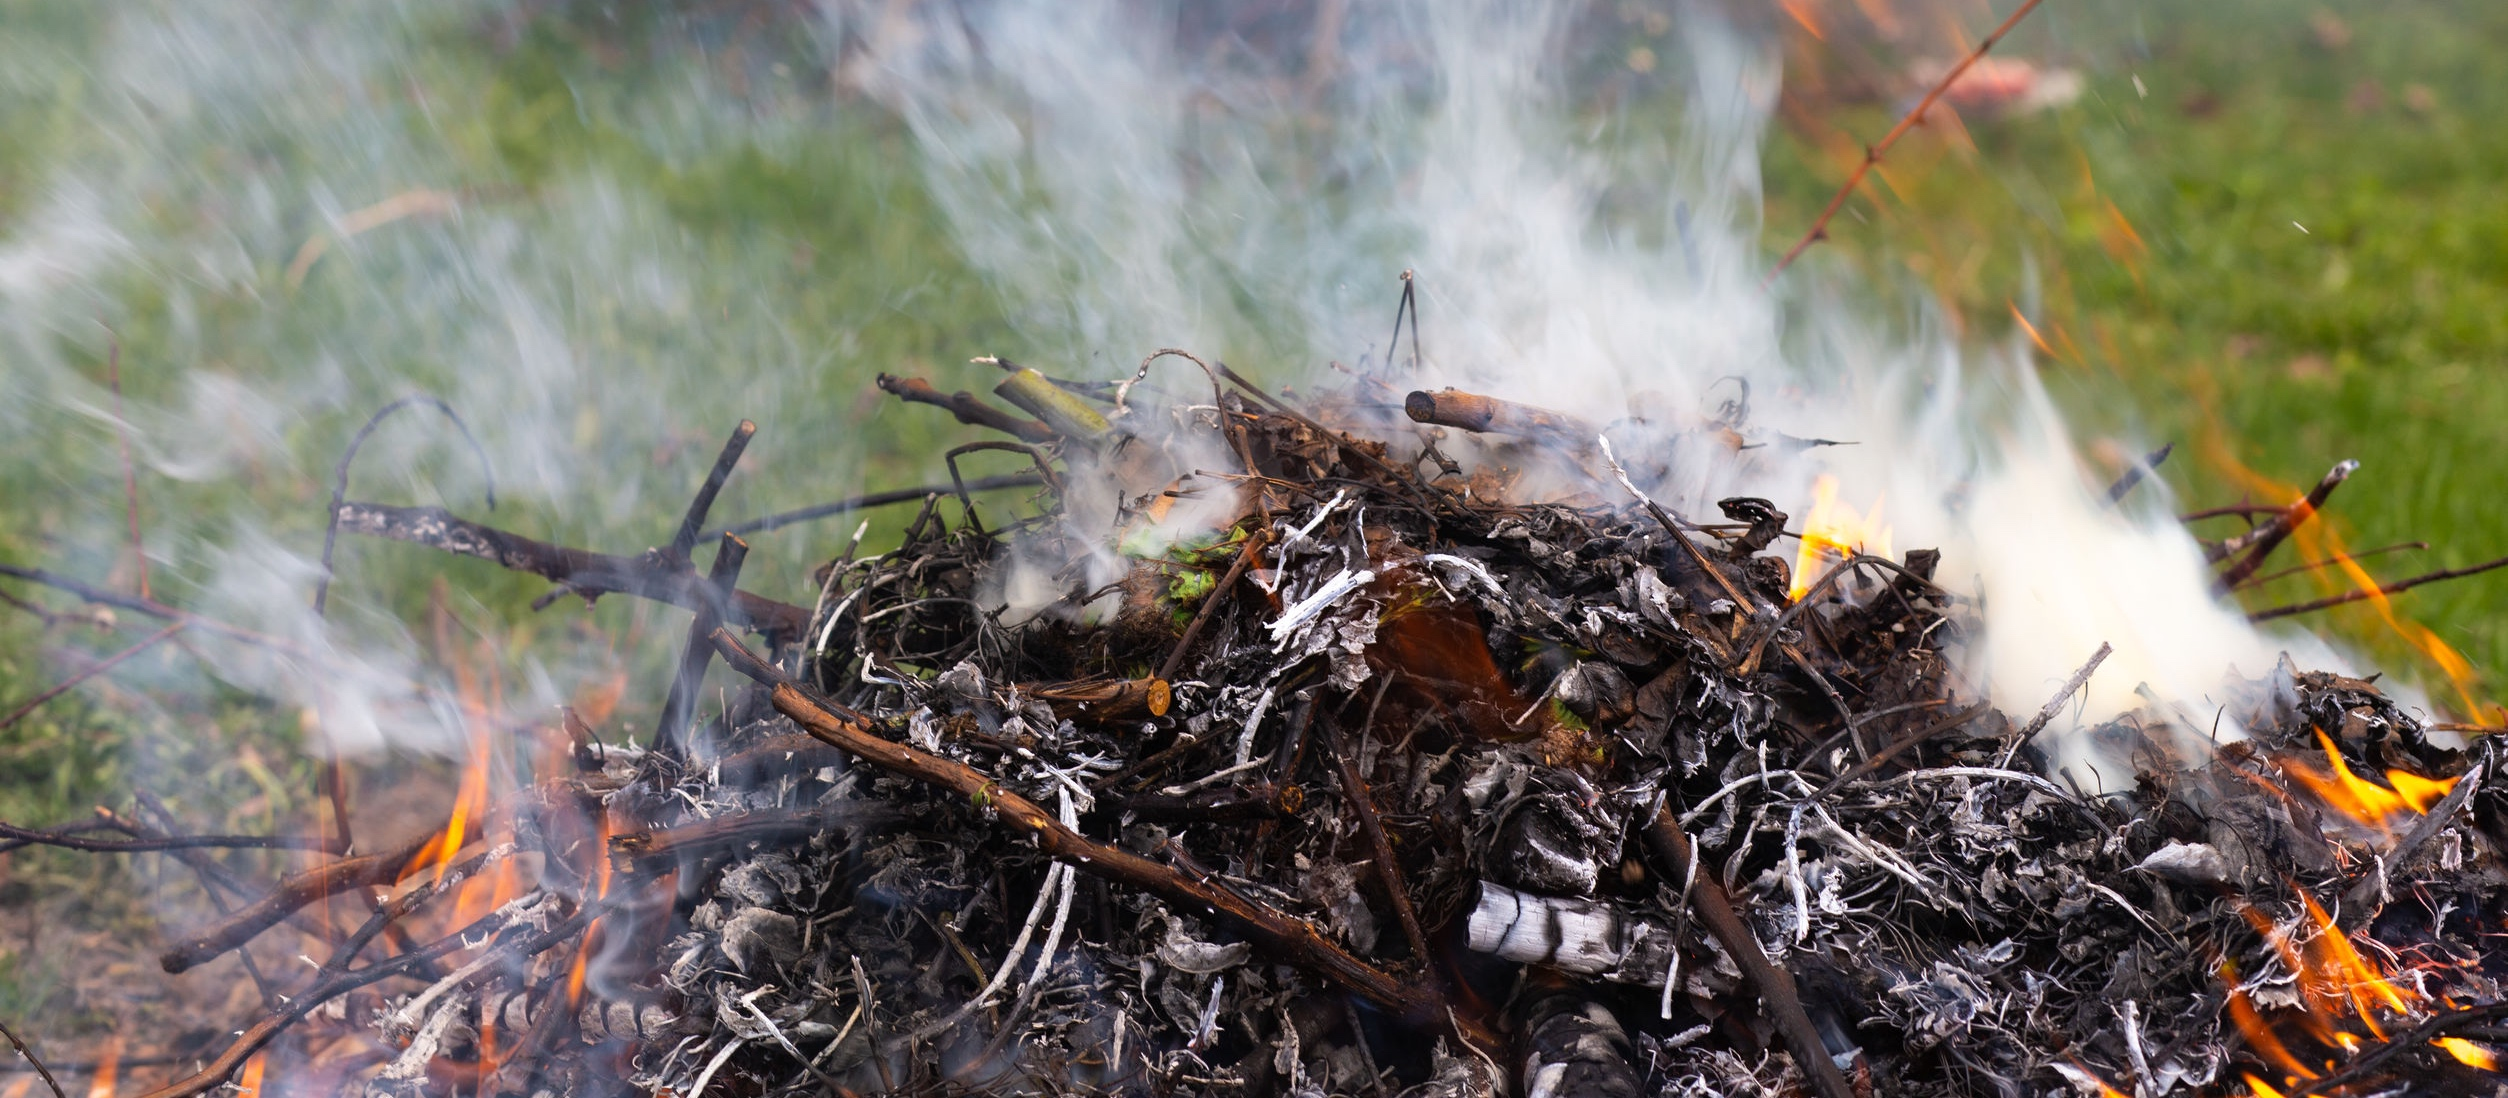 Fire composed of yard debris